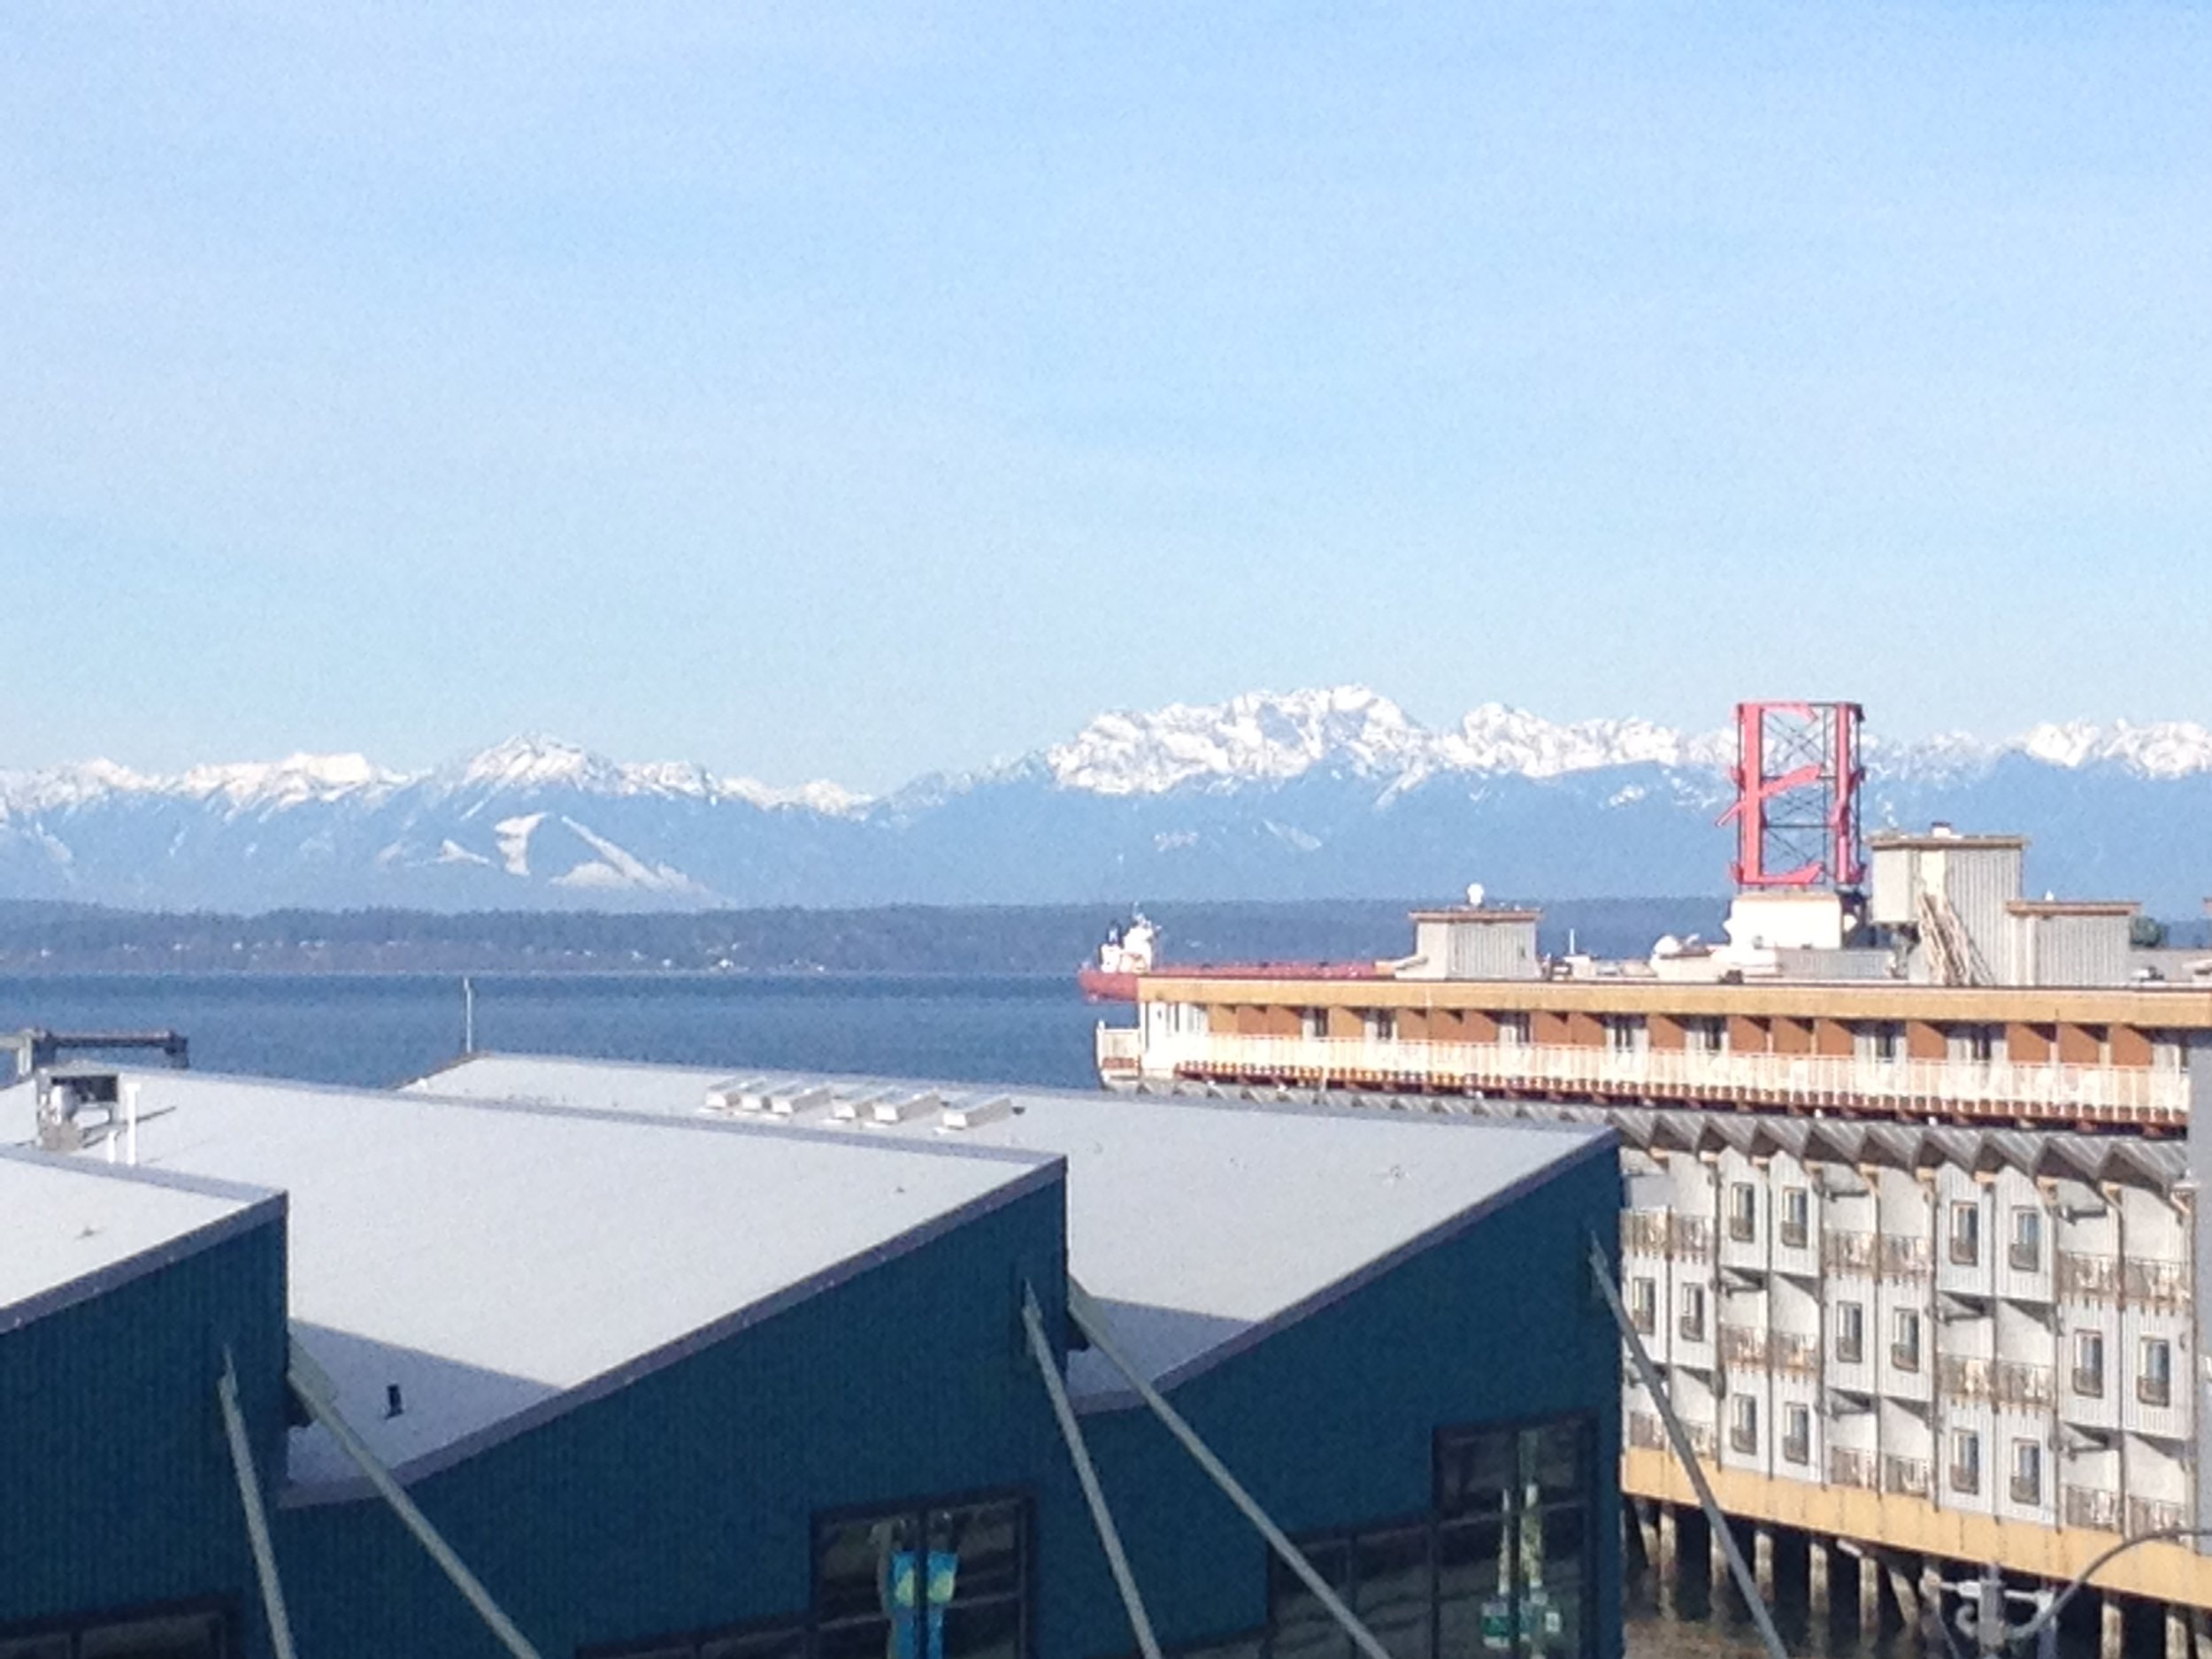 Olympic Mountains, across the water from downtown